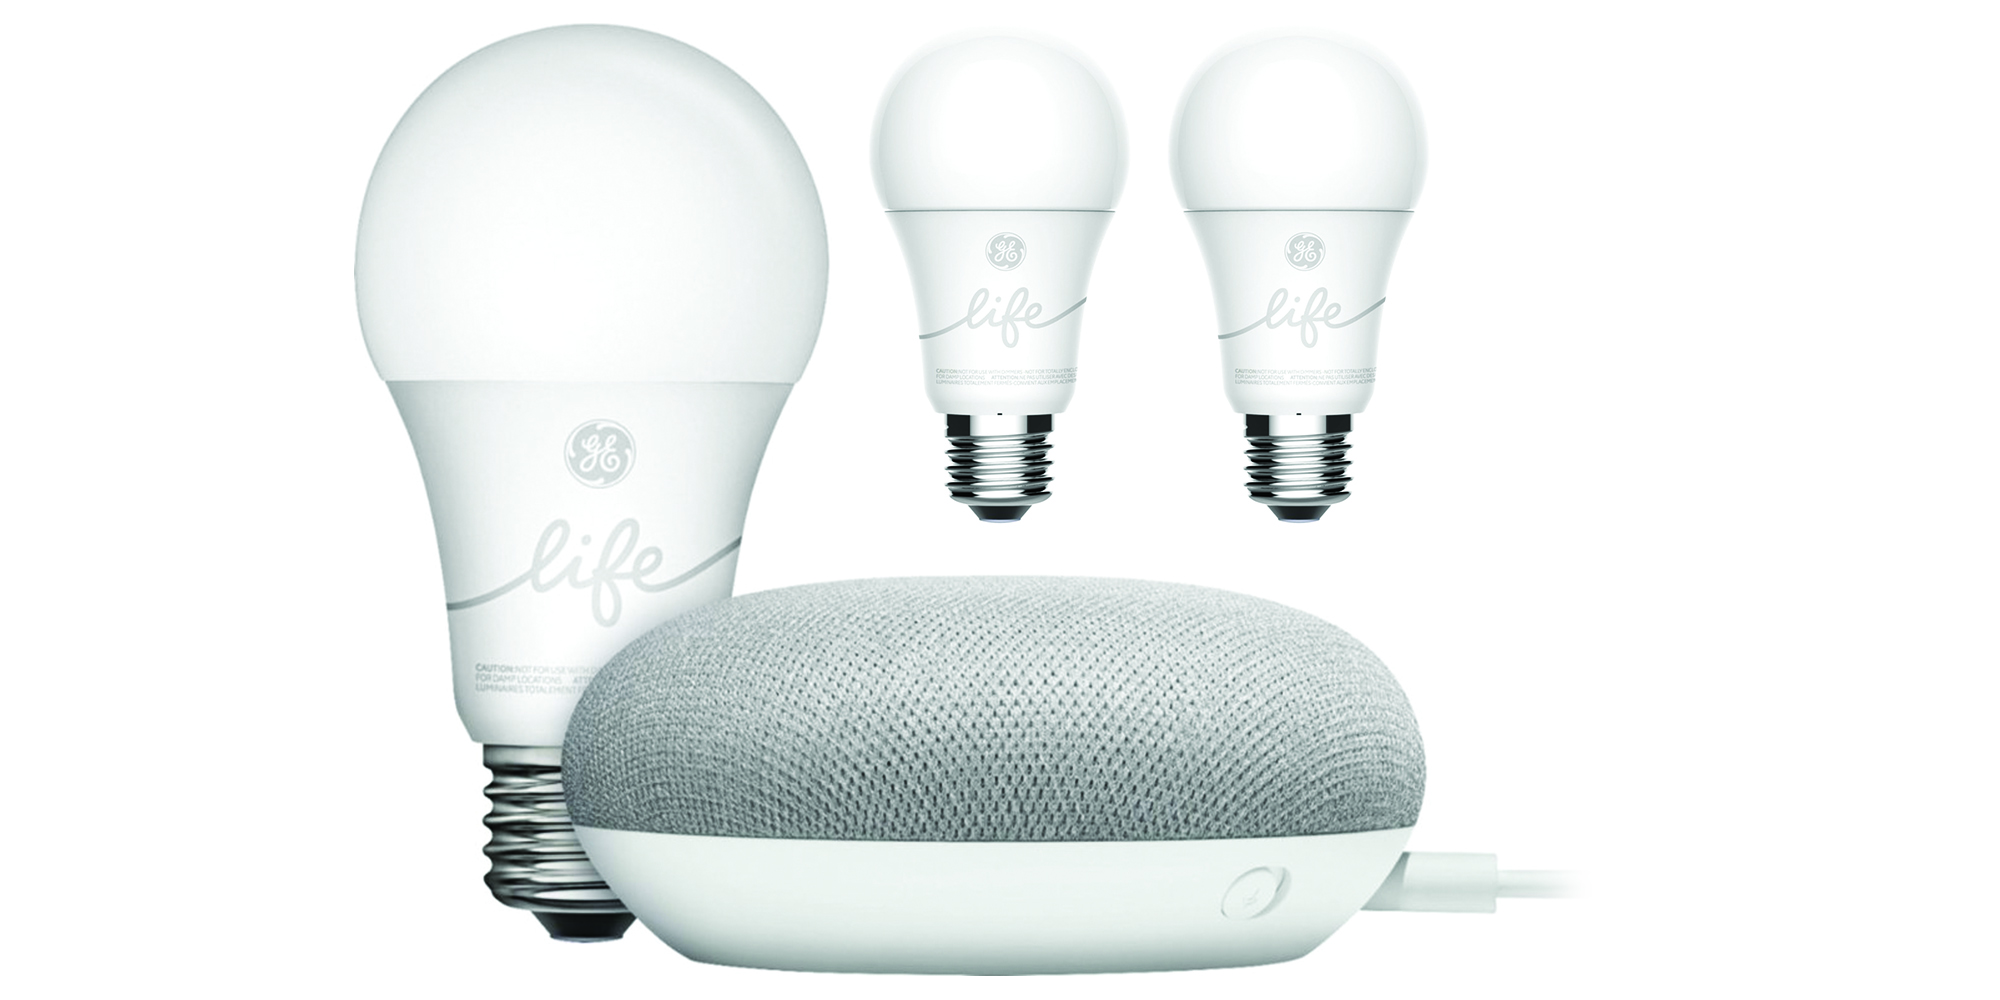 Kickoff your Assistant-powered smart home w/ a Google Home Mini Speaker + 3 GE Bulbs for $35